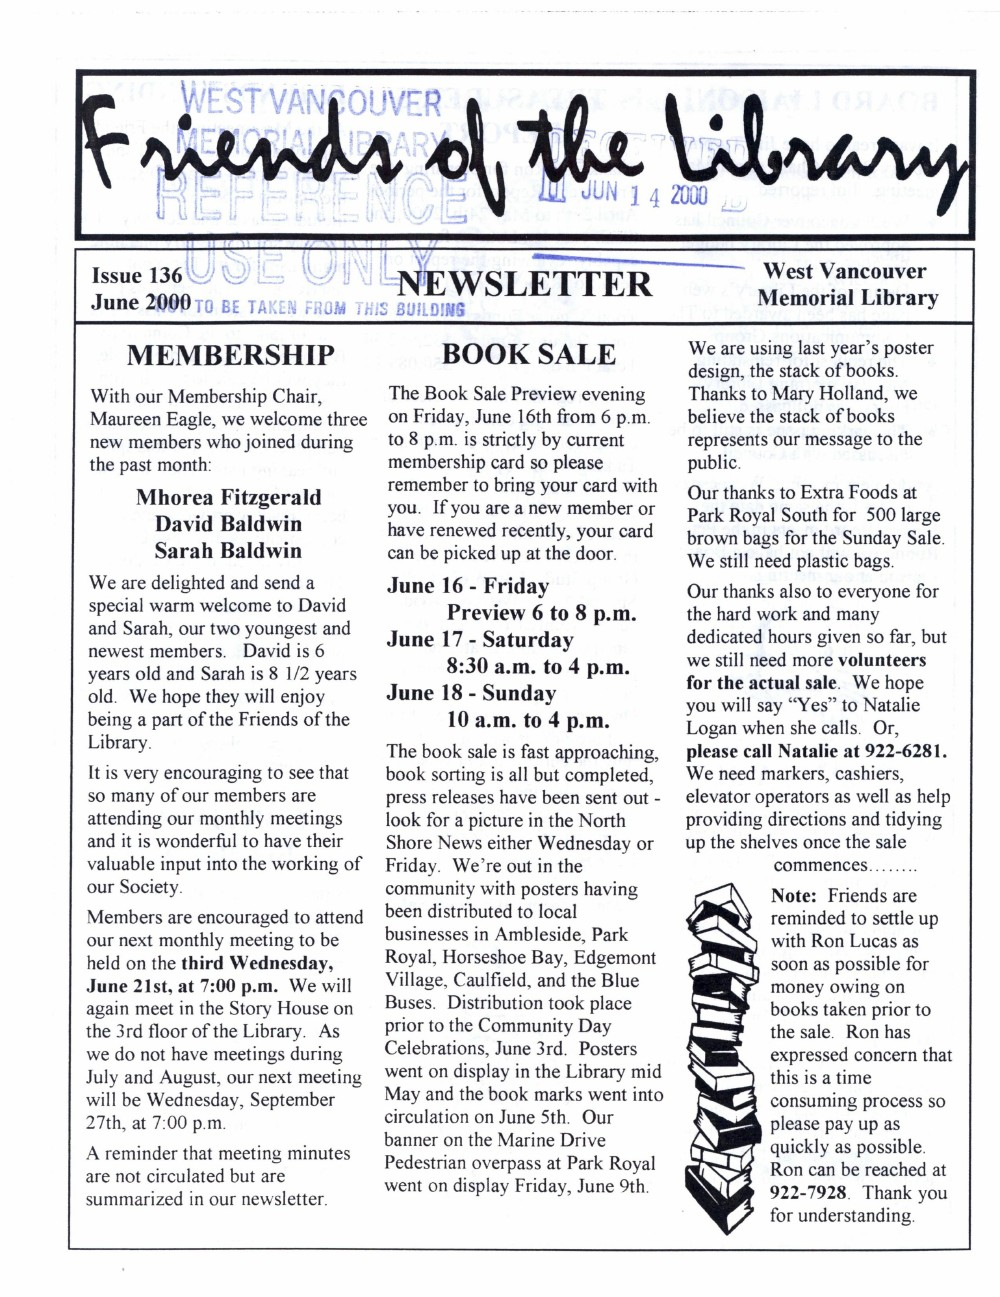 Friends of the Library Newsletter, June 2000